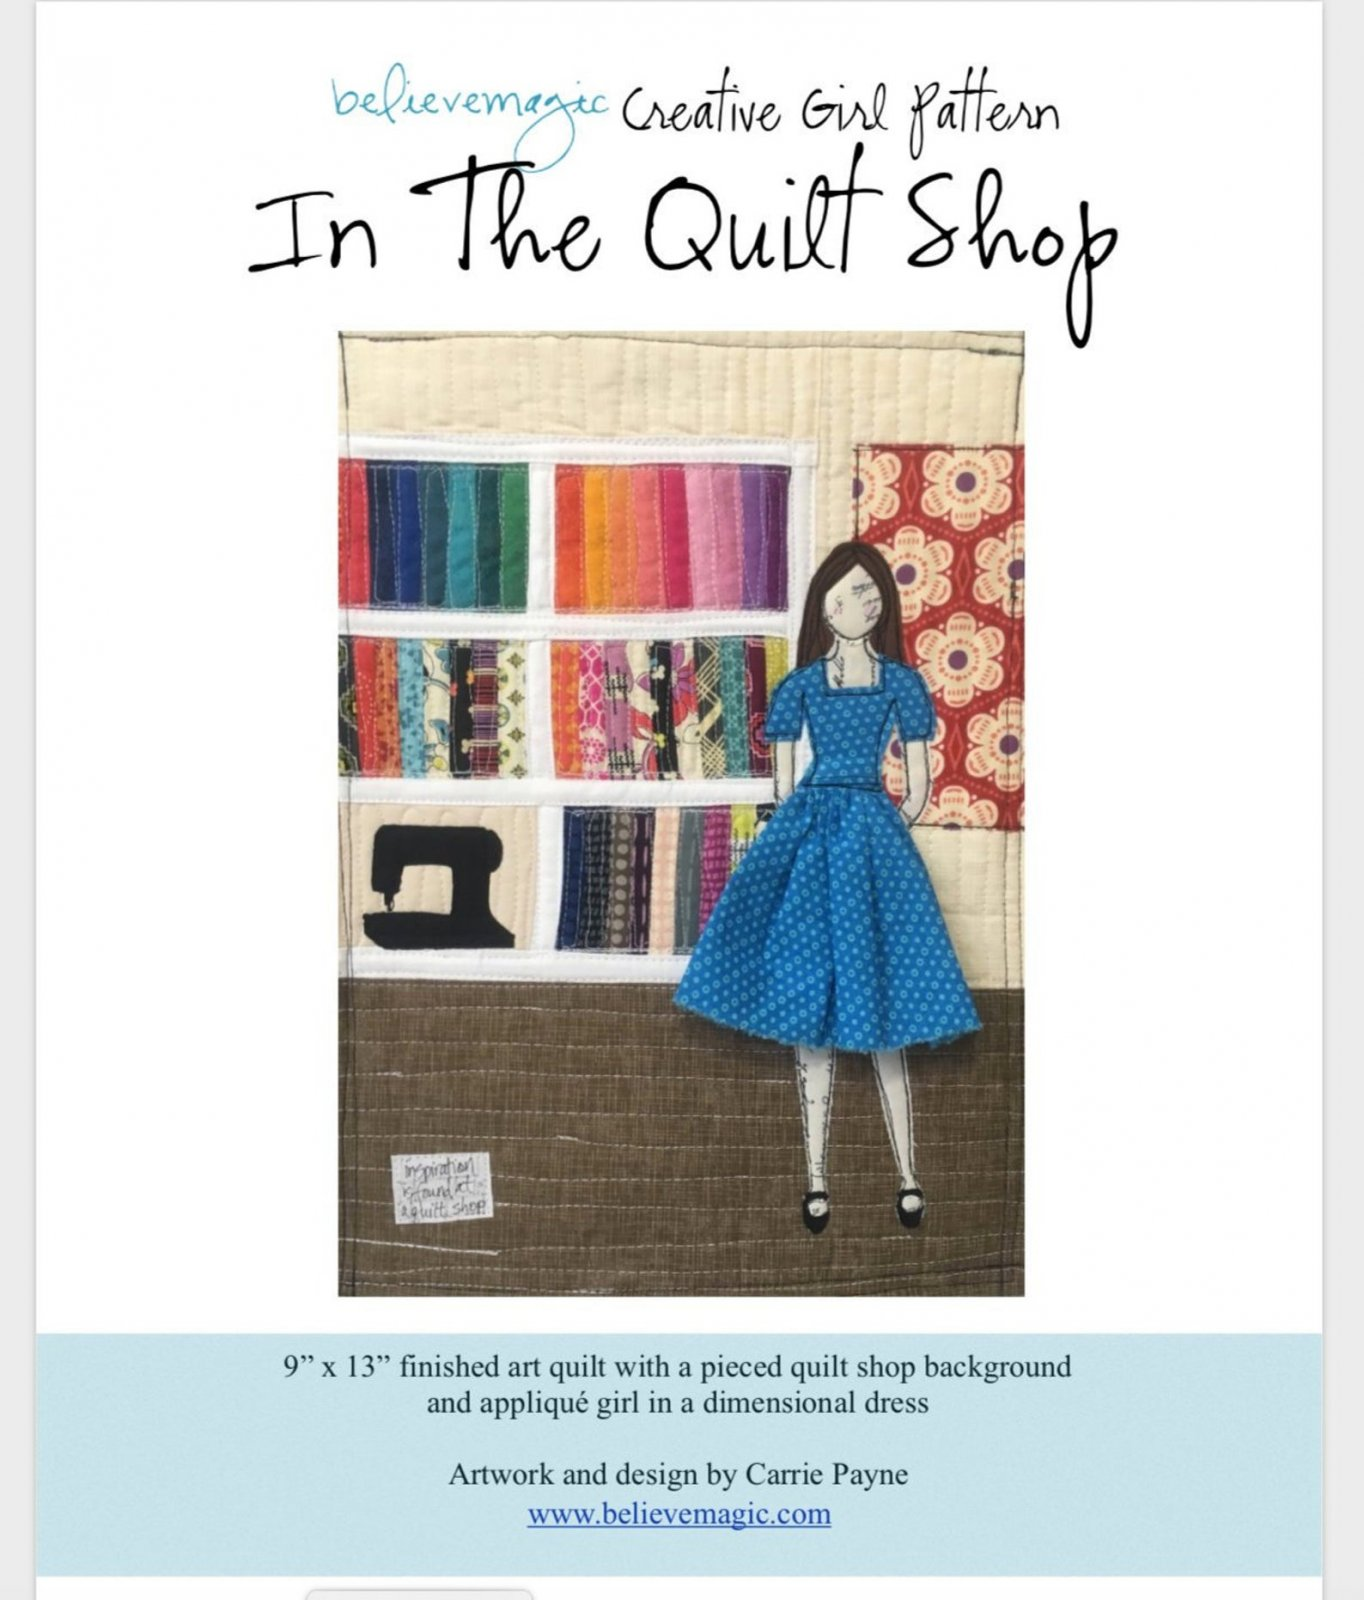 In The Quilt Shop